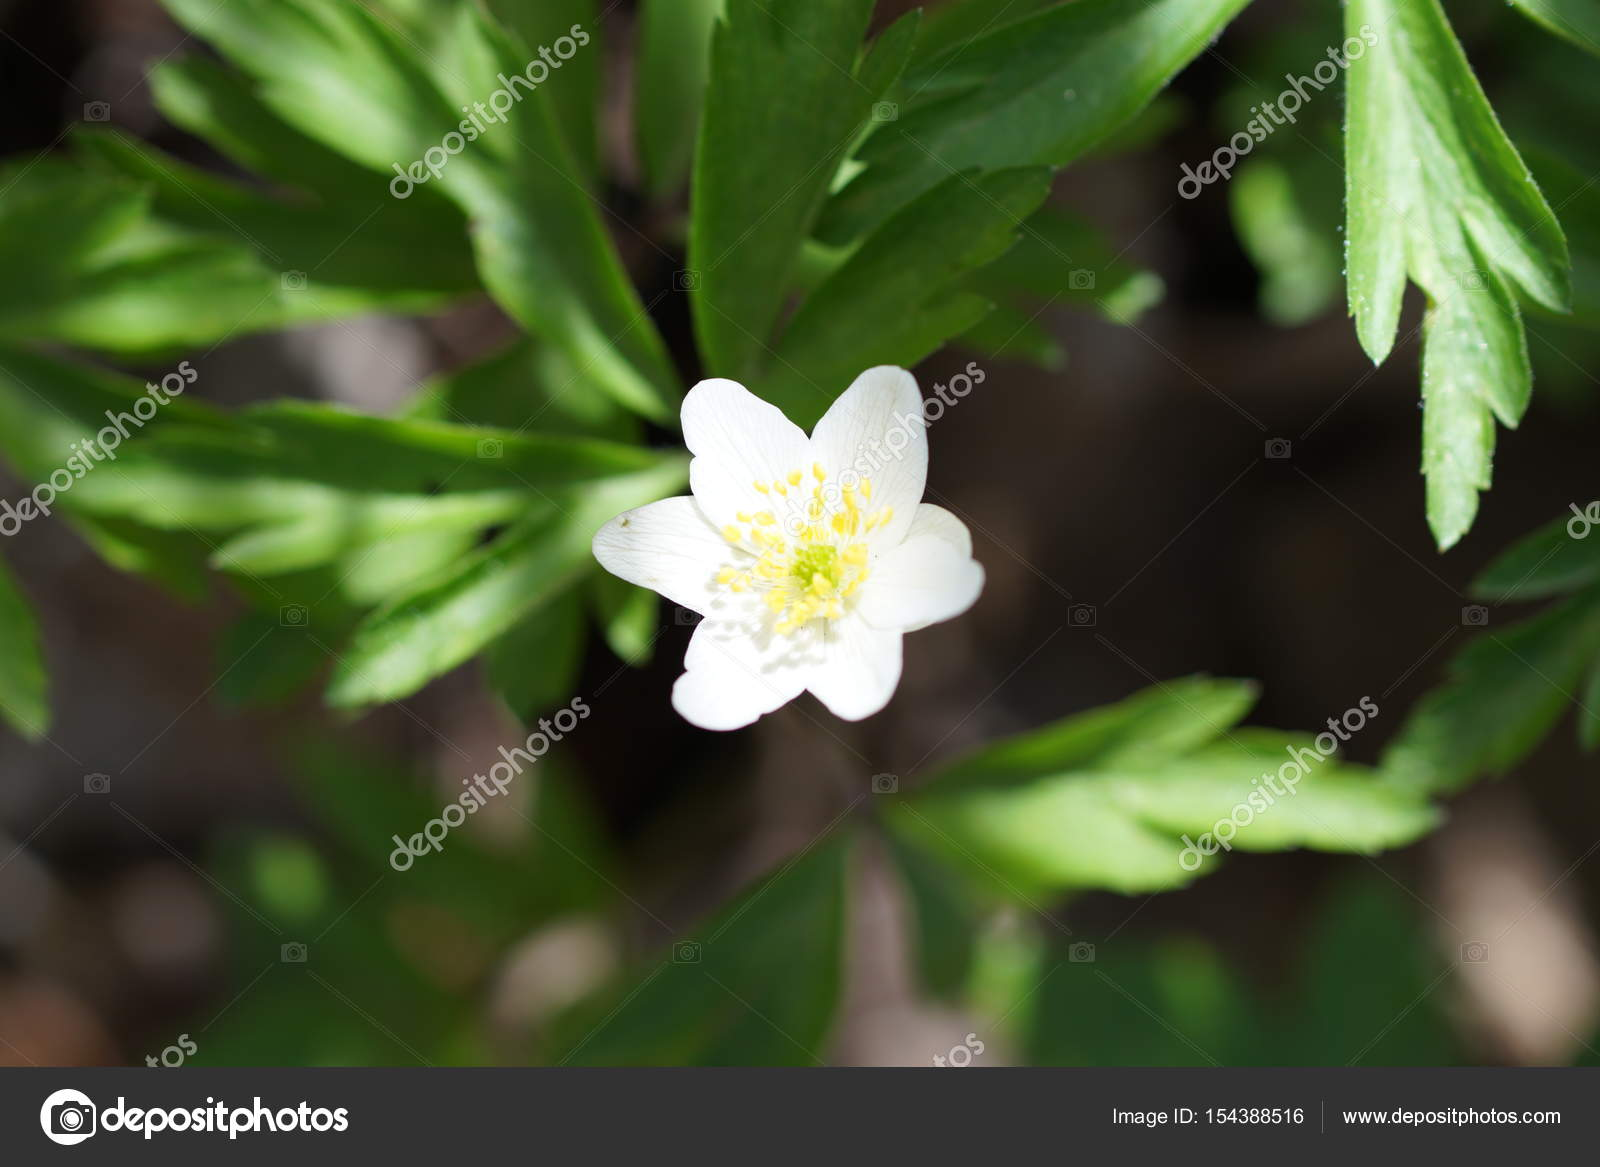 The First Spring Flower White Anemone In The Forest Blurred